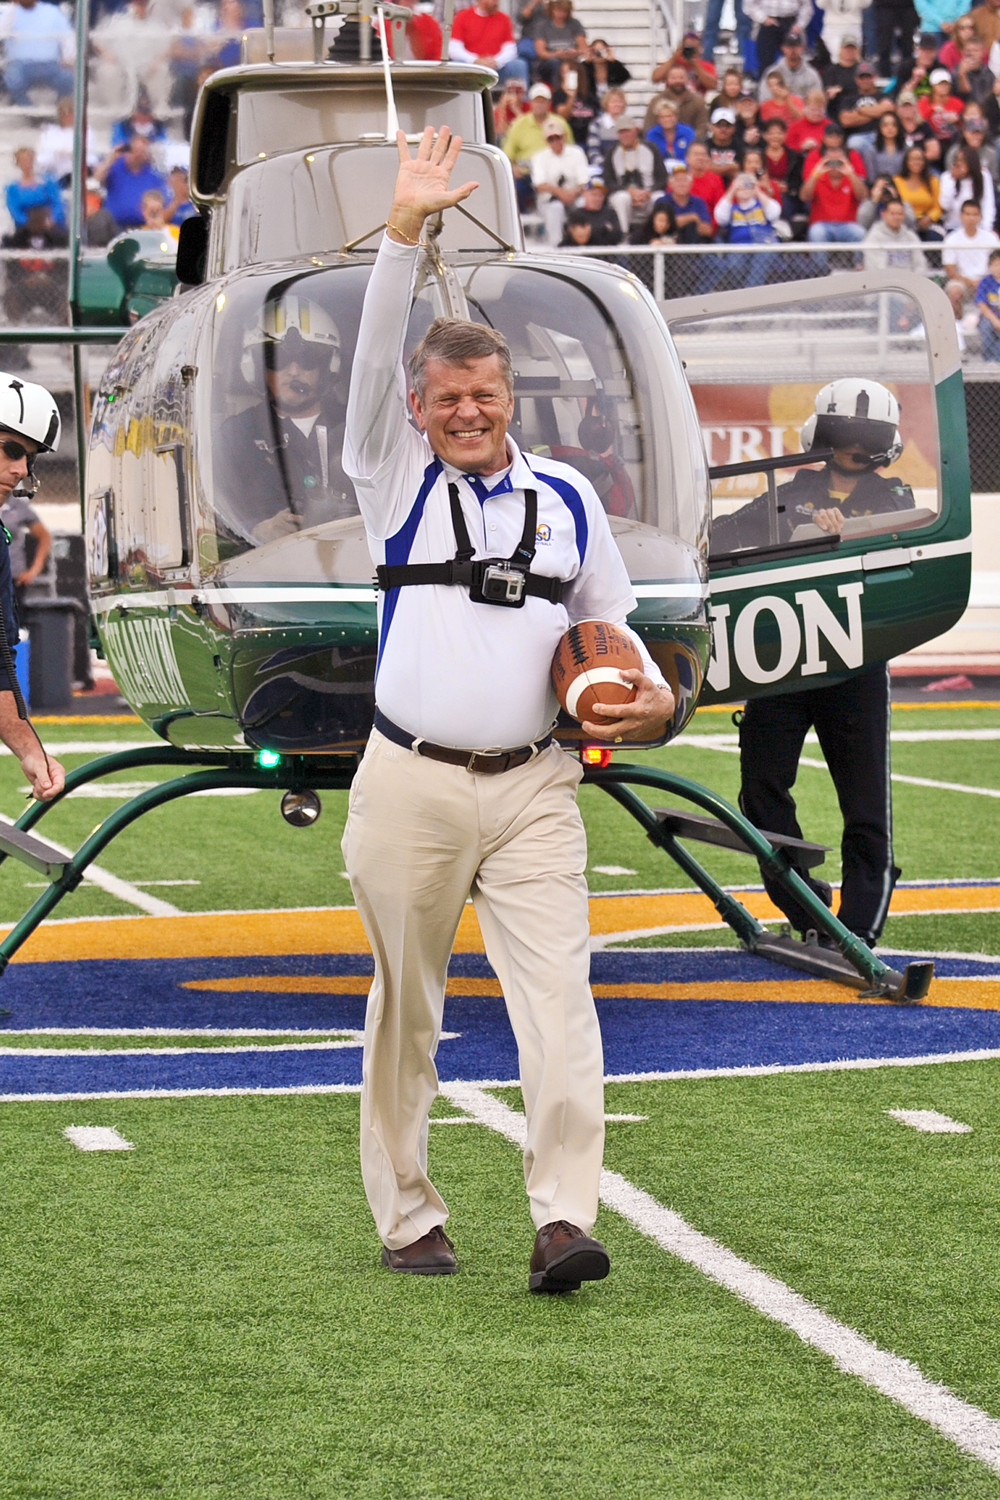 Shannon AirMed 1 flew in Fred Key with the game ball at the First Home Game at 1st Community Fiel...